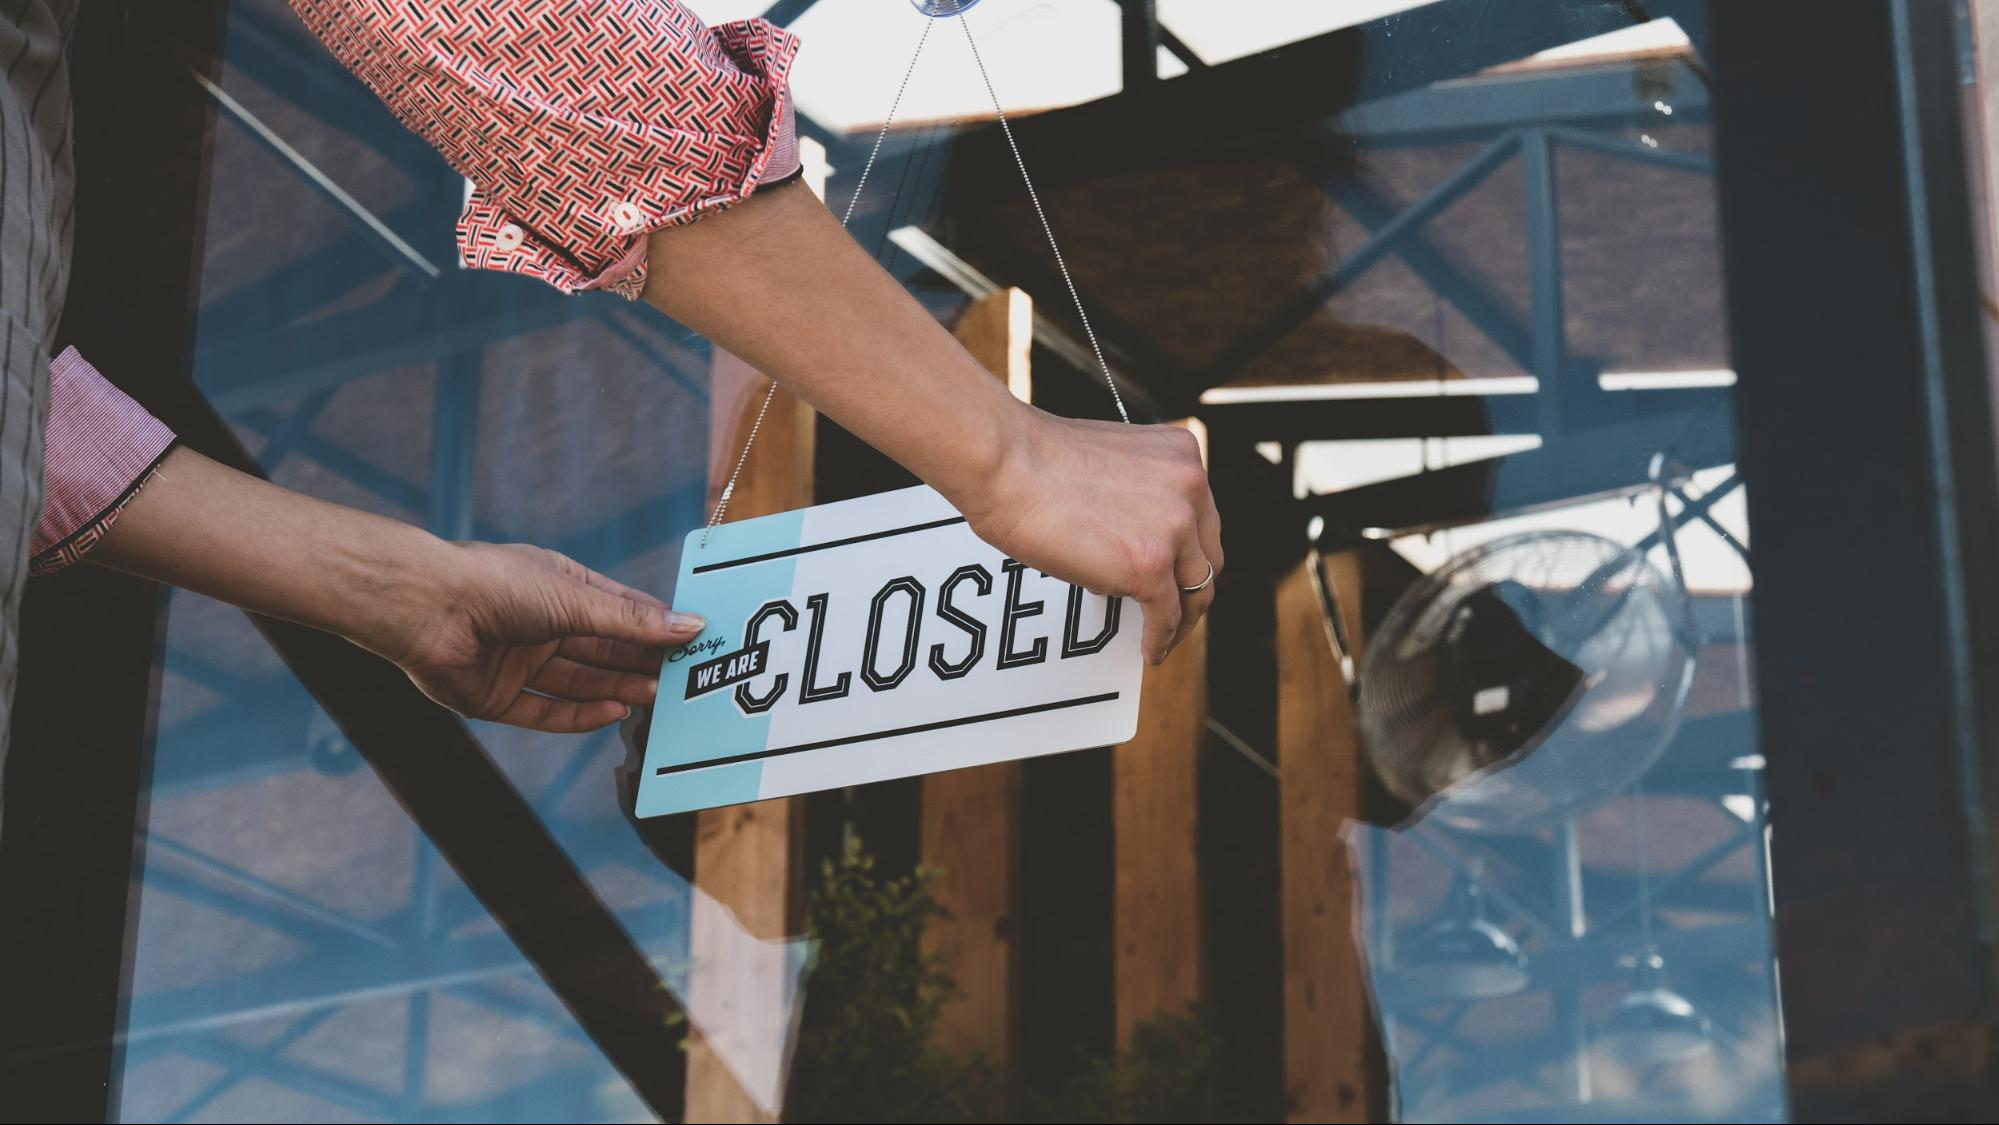 Business owner hanging a closed sign on the door